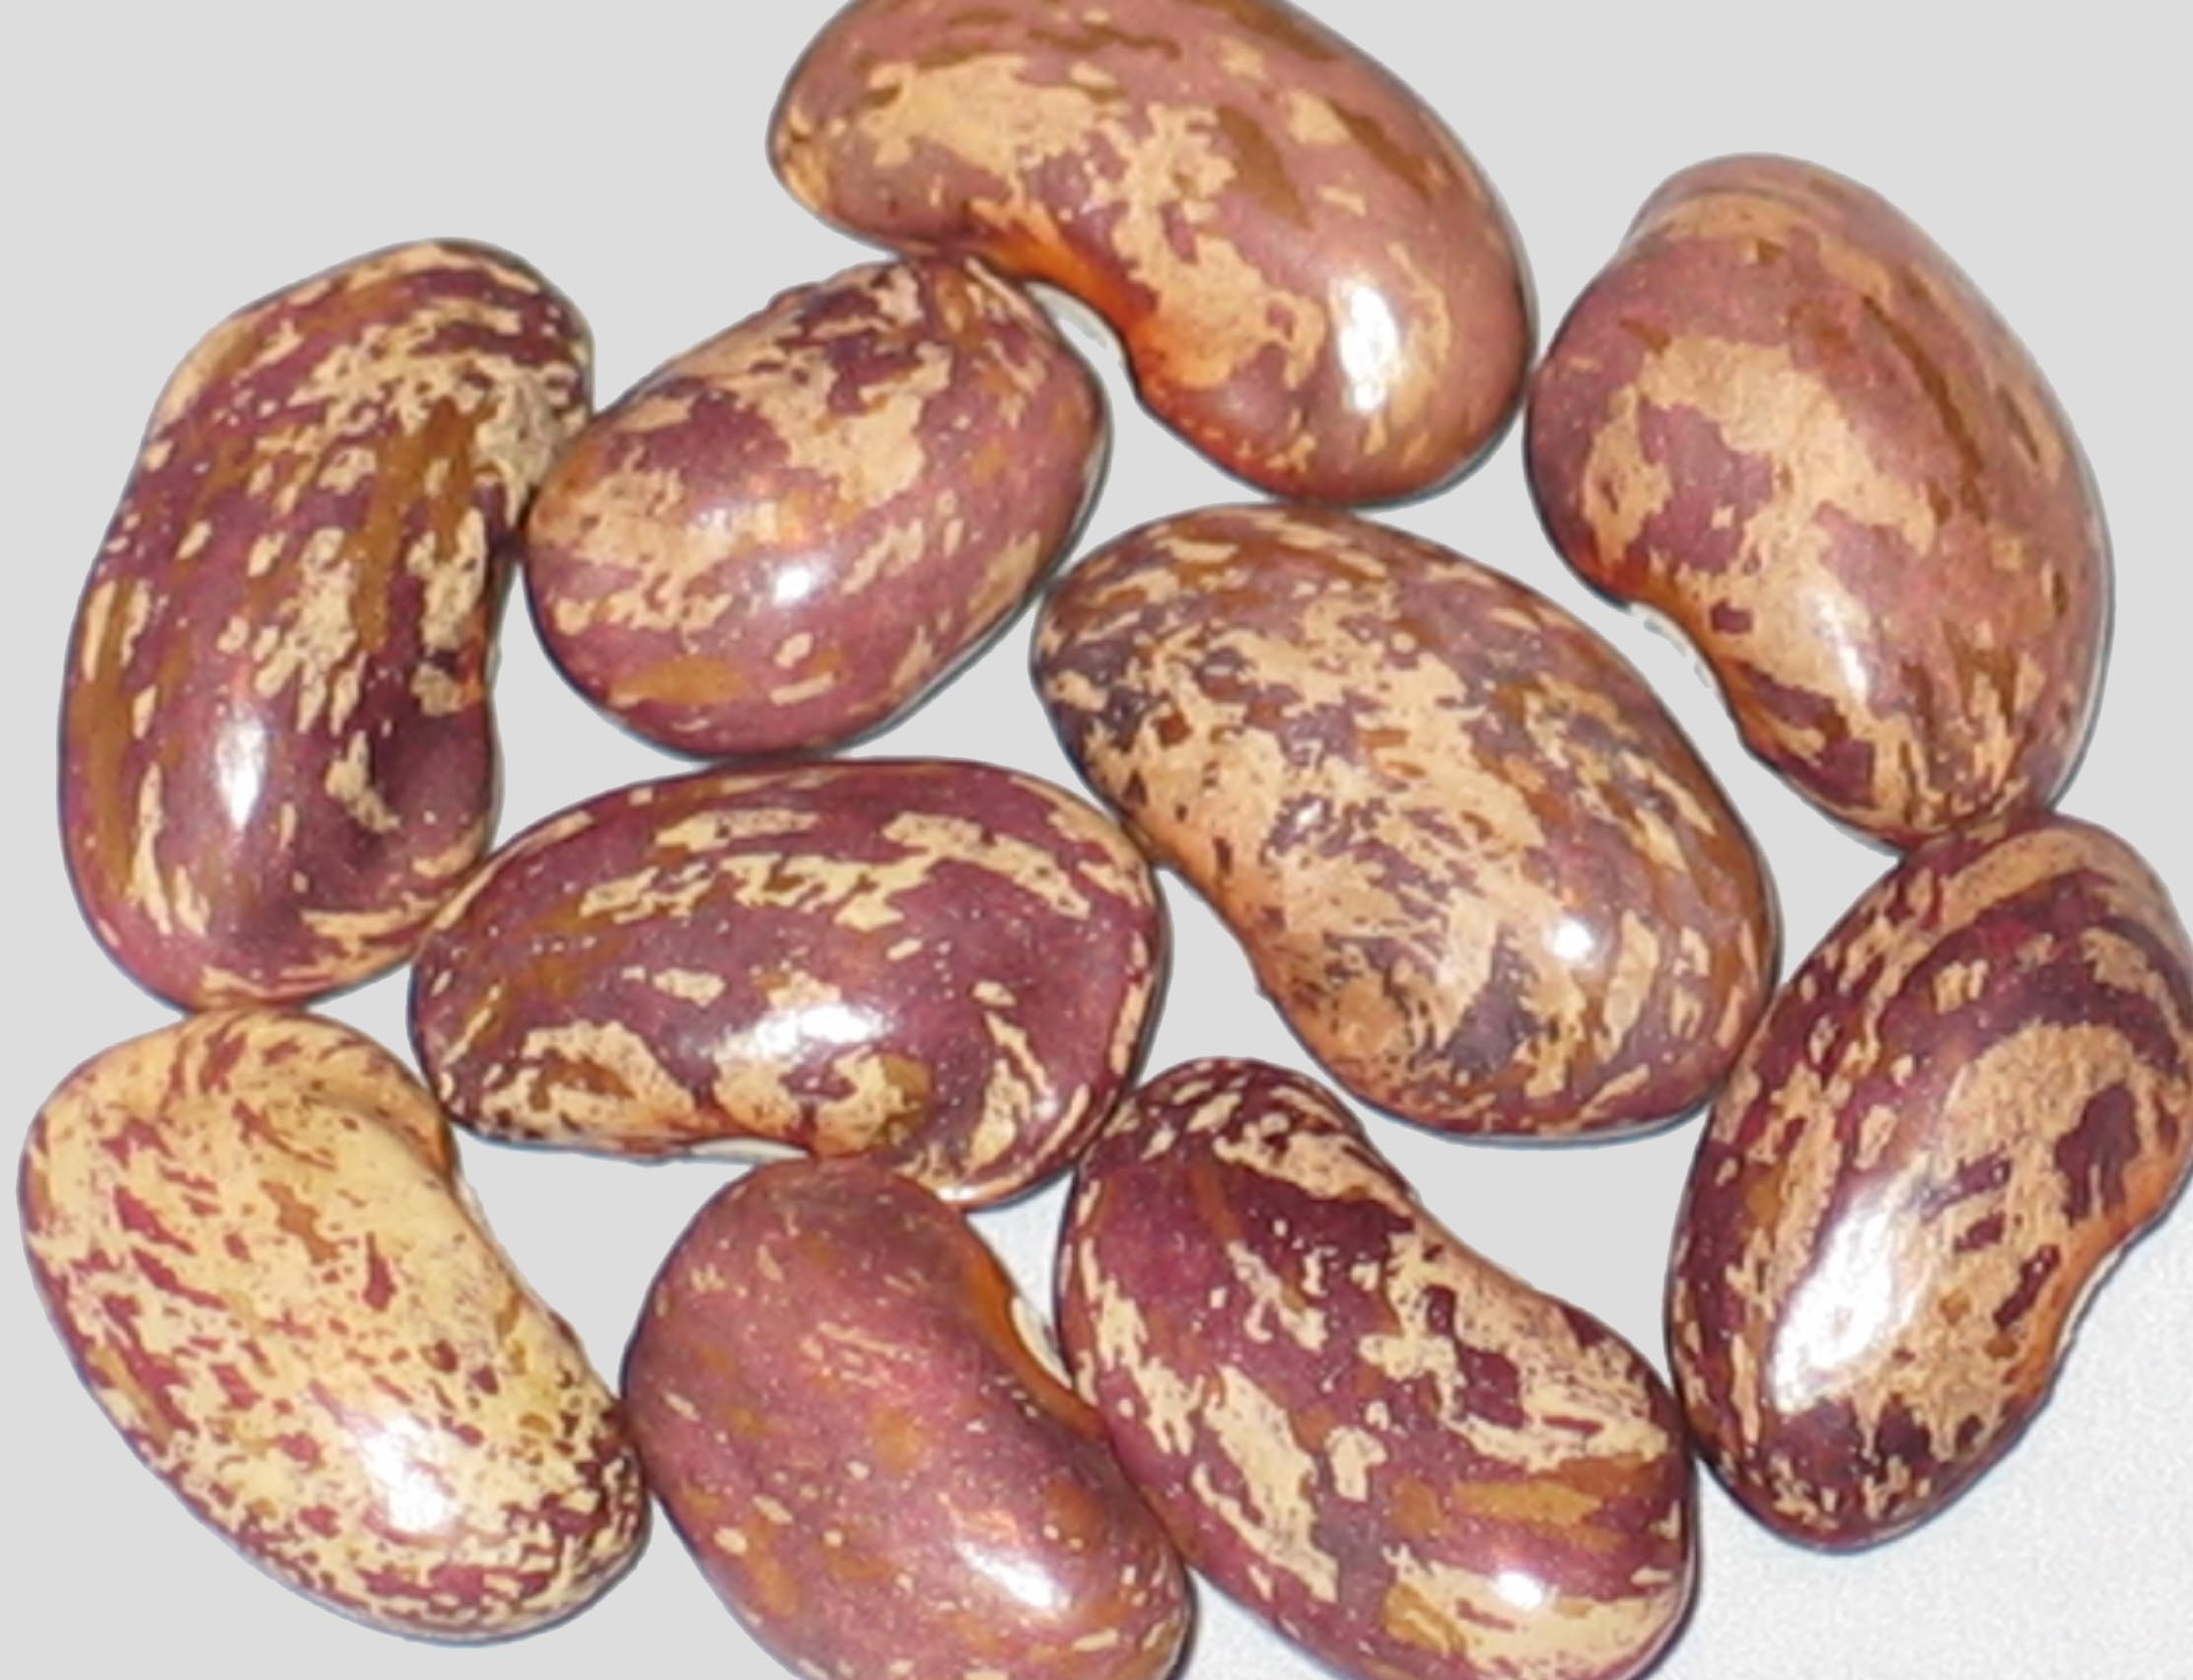 image of Hopper Holler beans